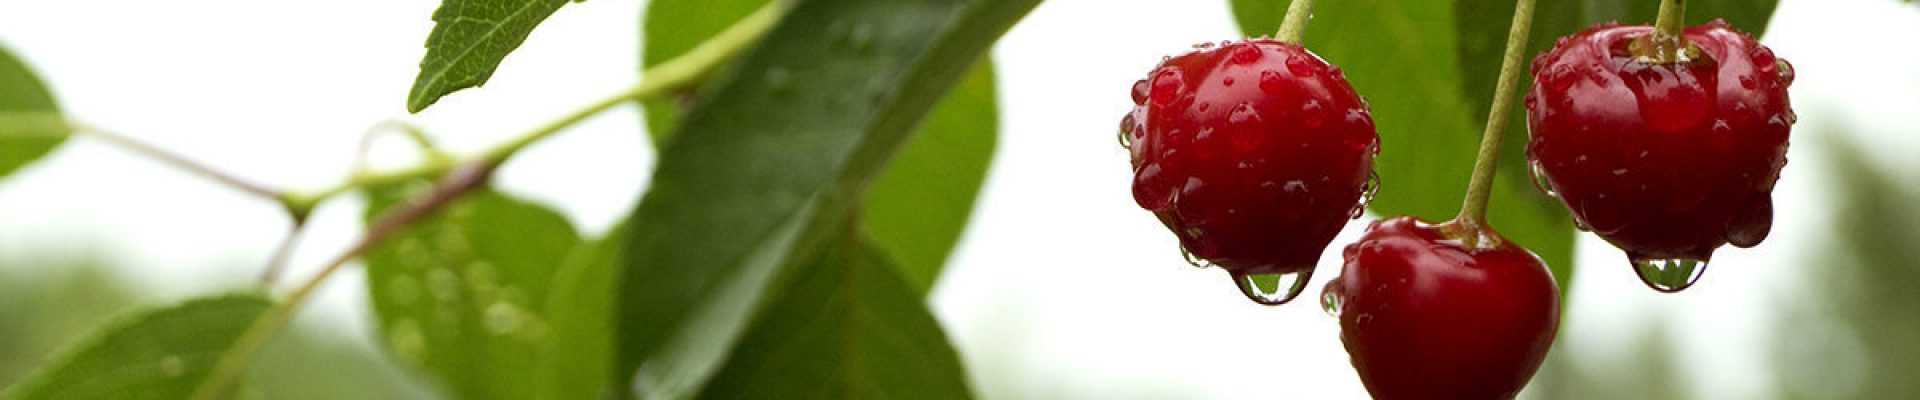 Ripe cherries in the raindrops. blurred background.